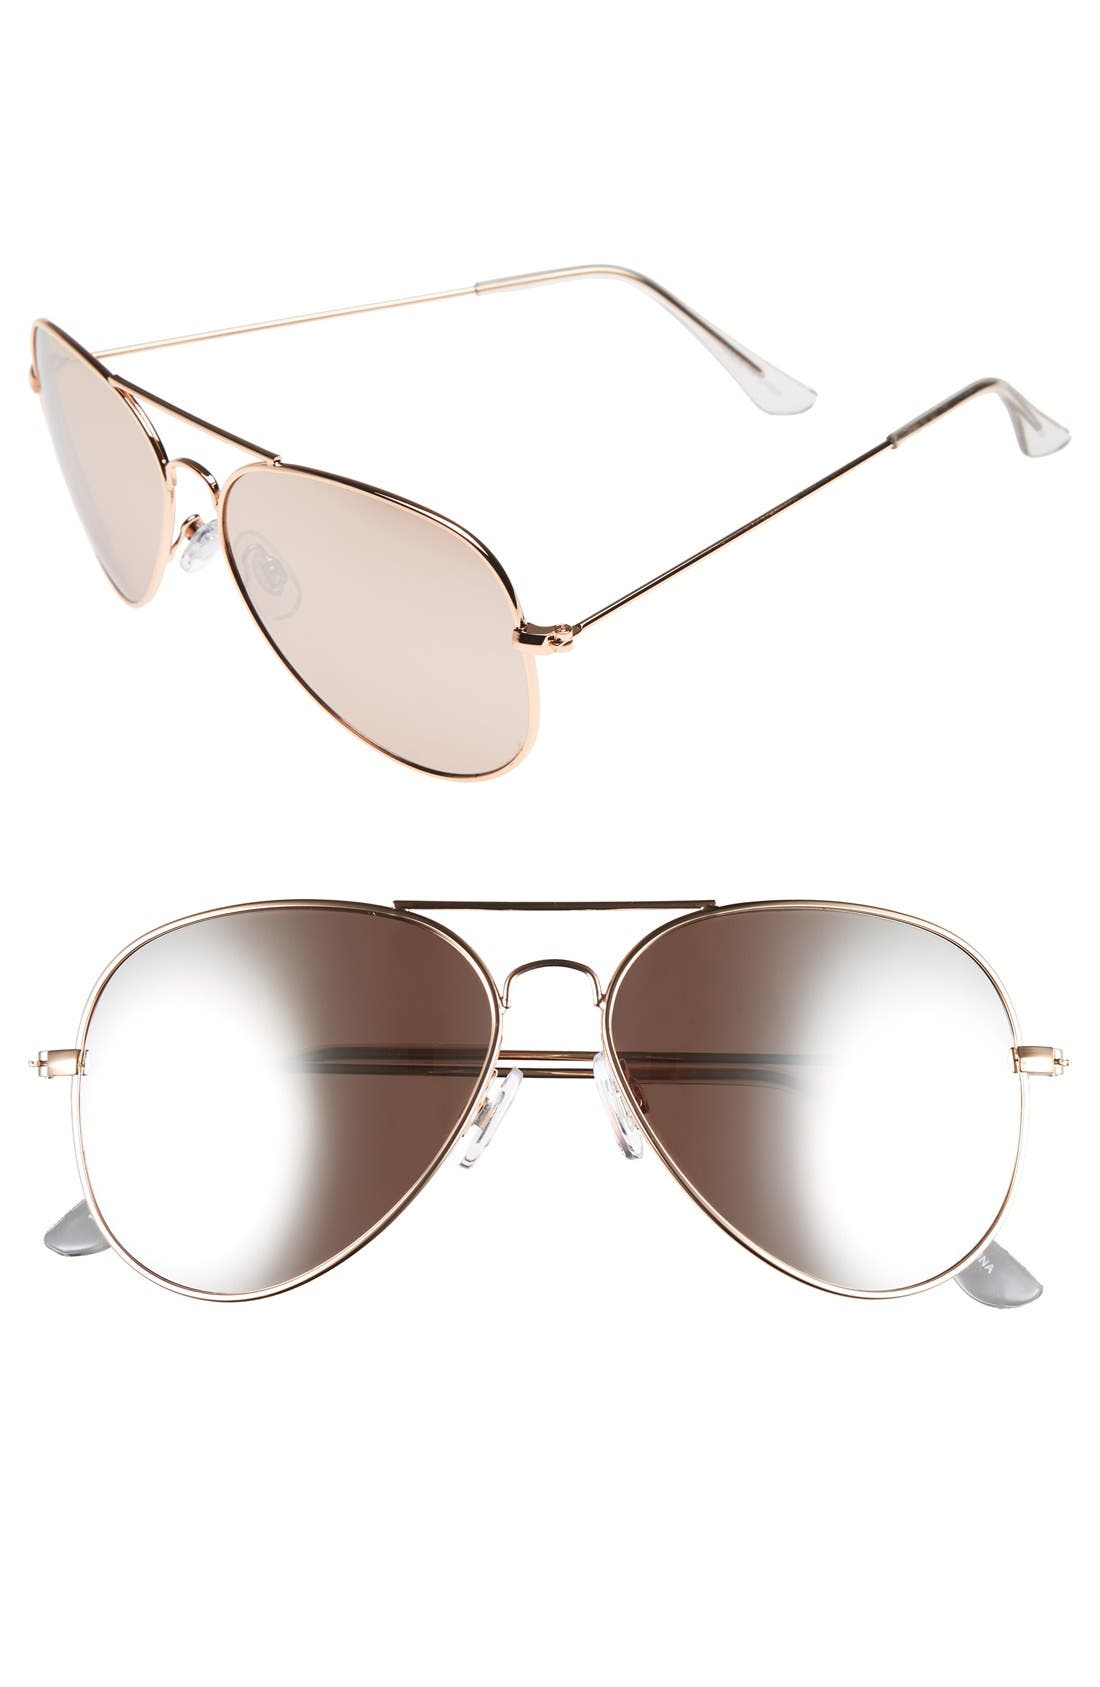 Mirrored Aviator 57mm Sunglasses,                             Main thumbnail 8, color,